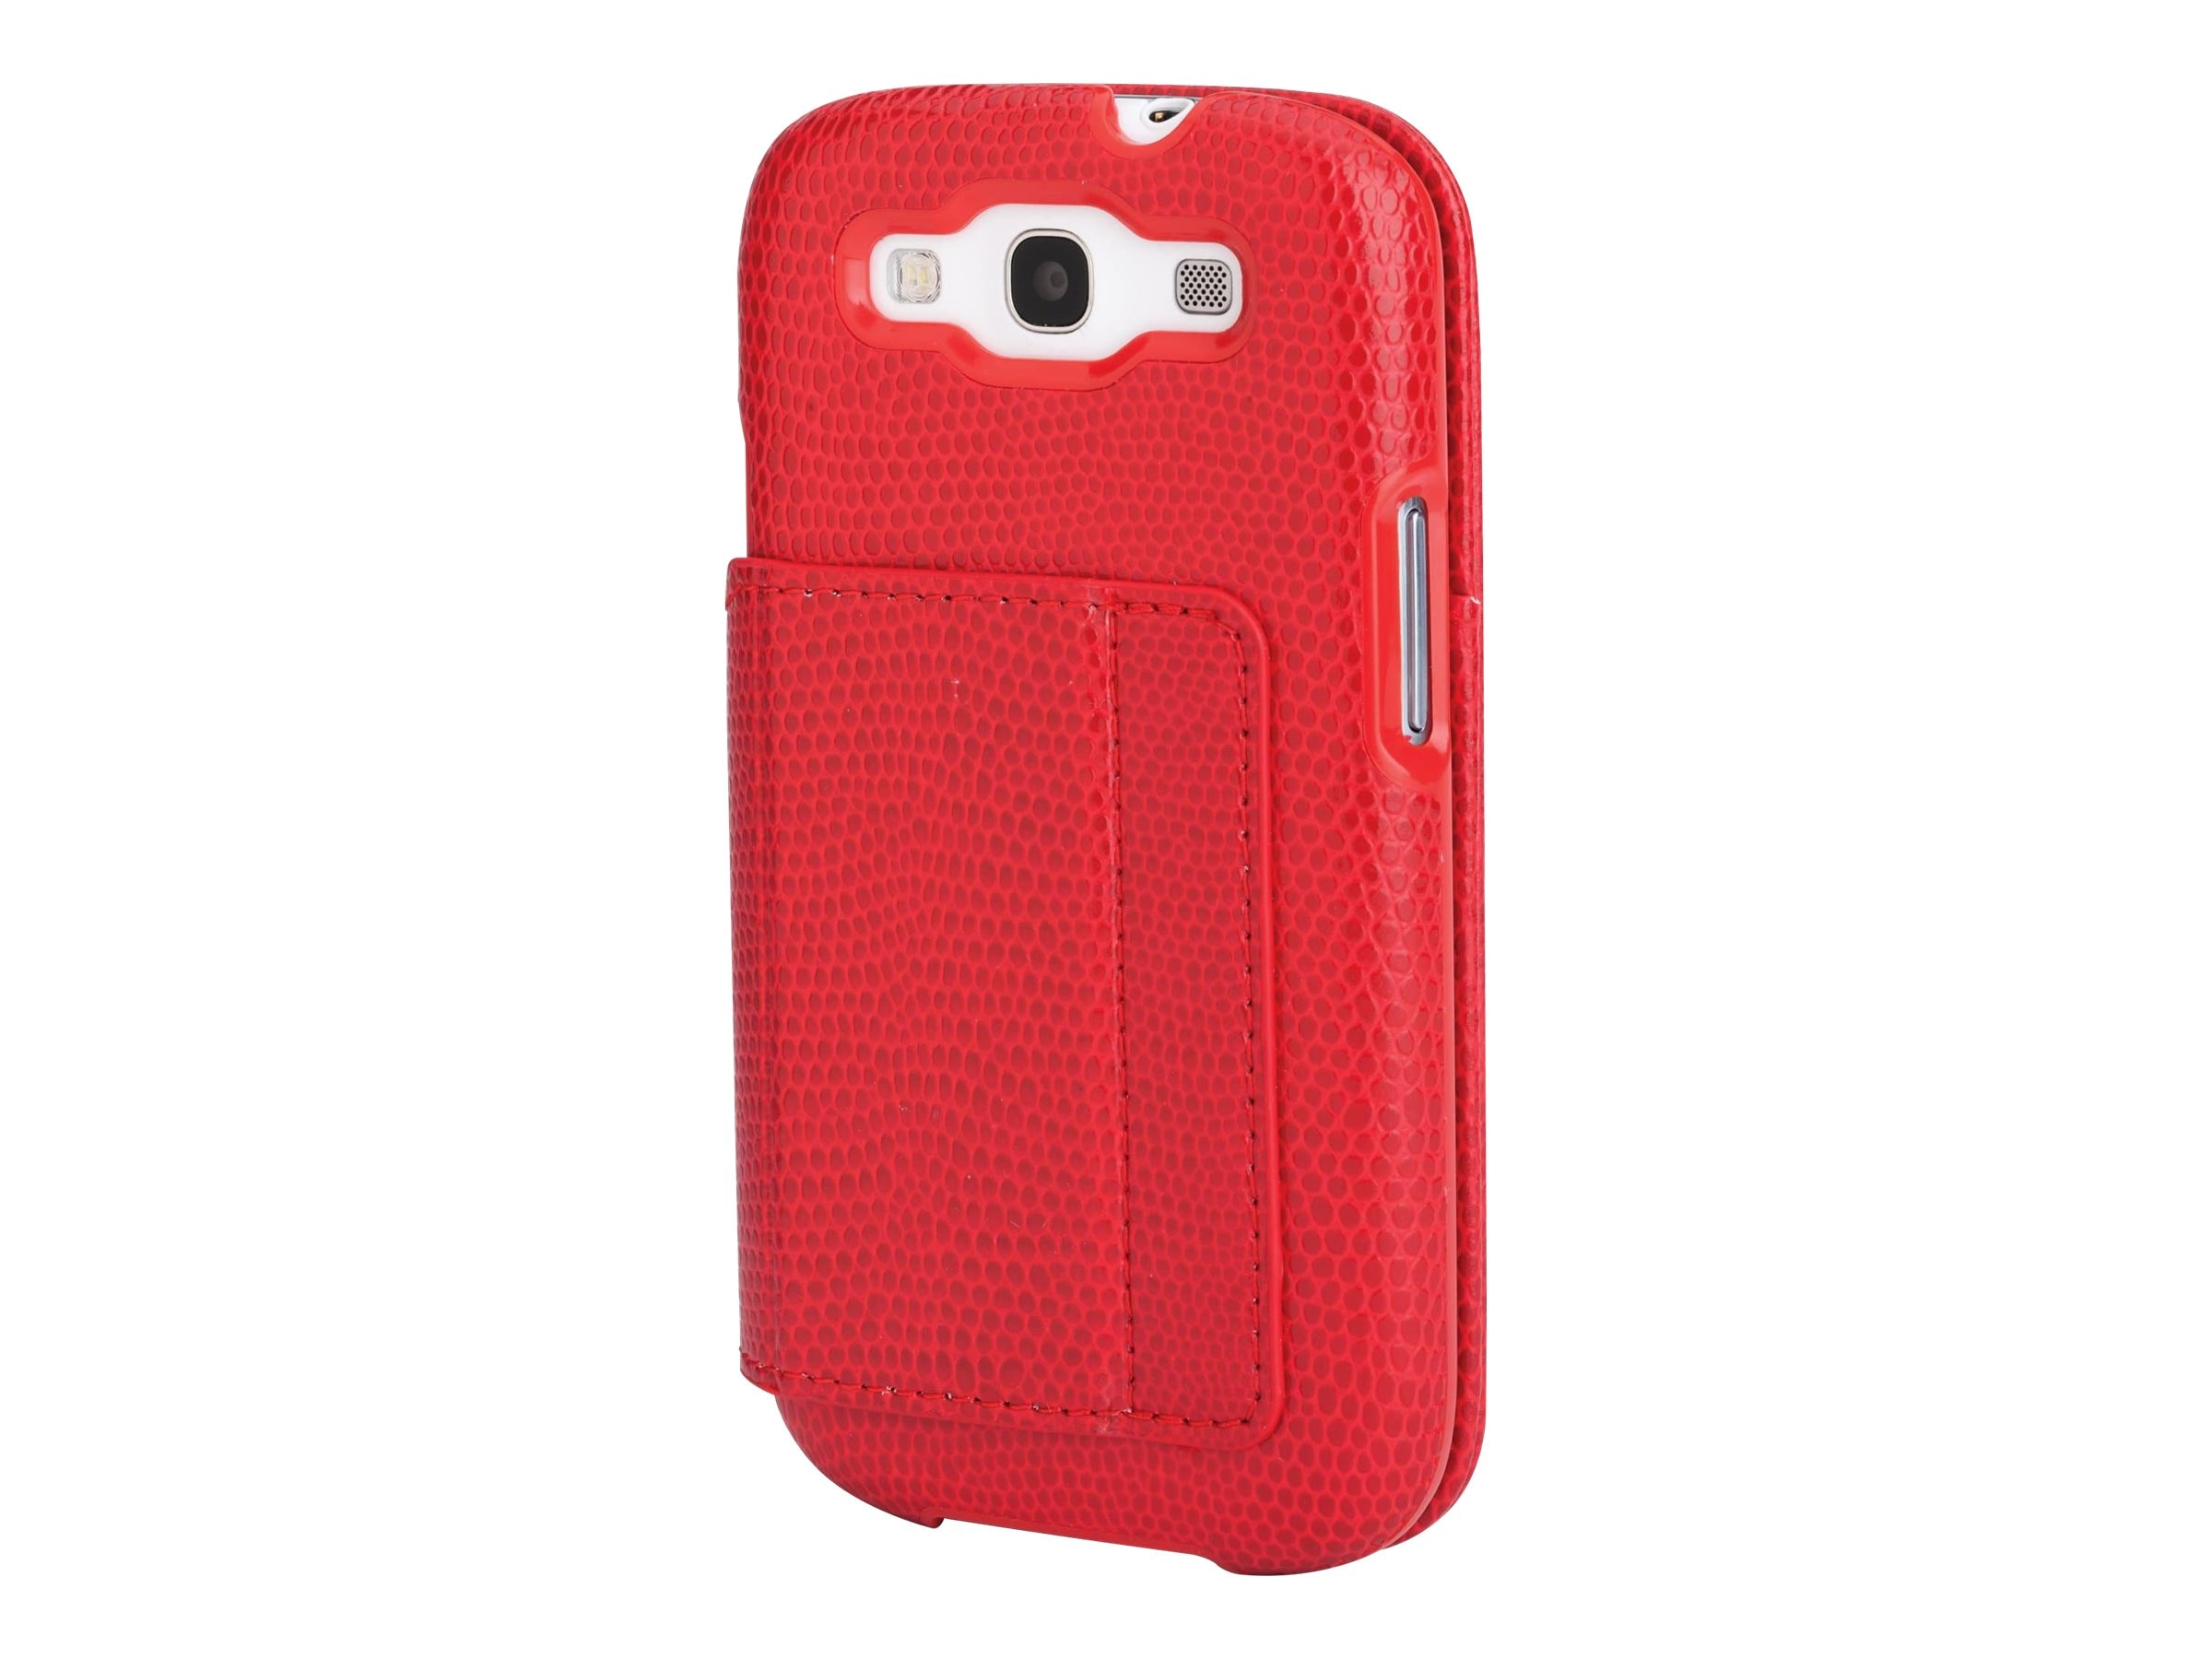 Kensington Portafolio Duo Wallet for Samsung Galaxy S III, Red Snake, K39613WW